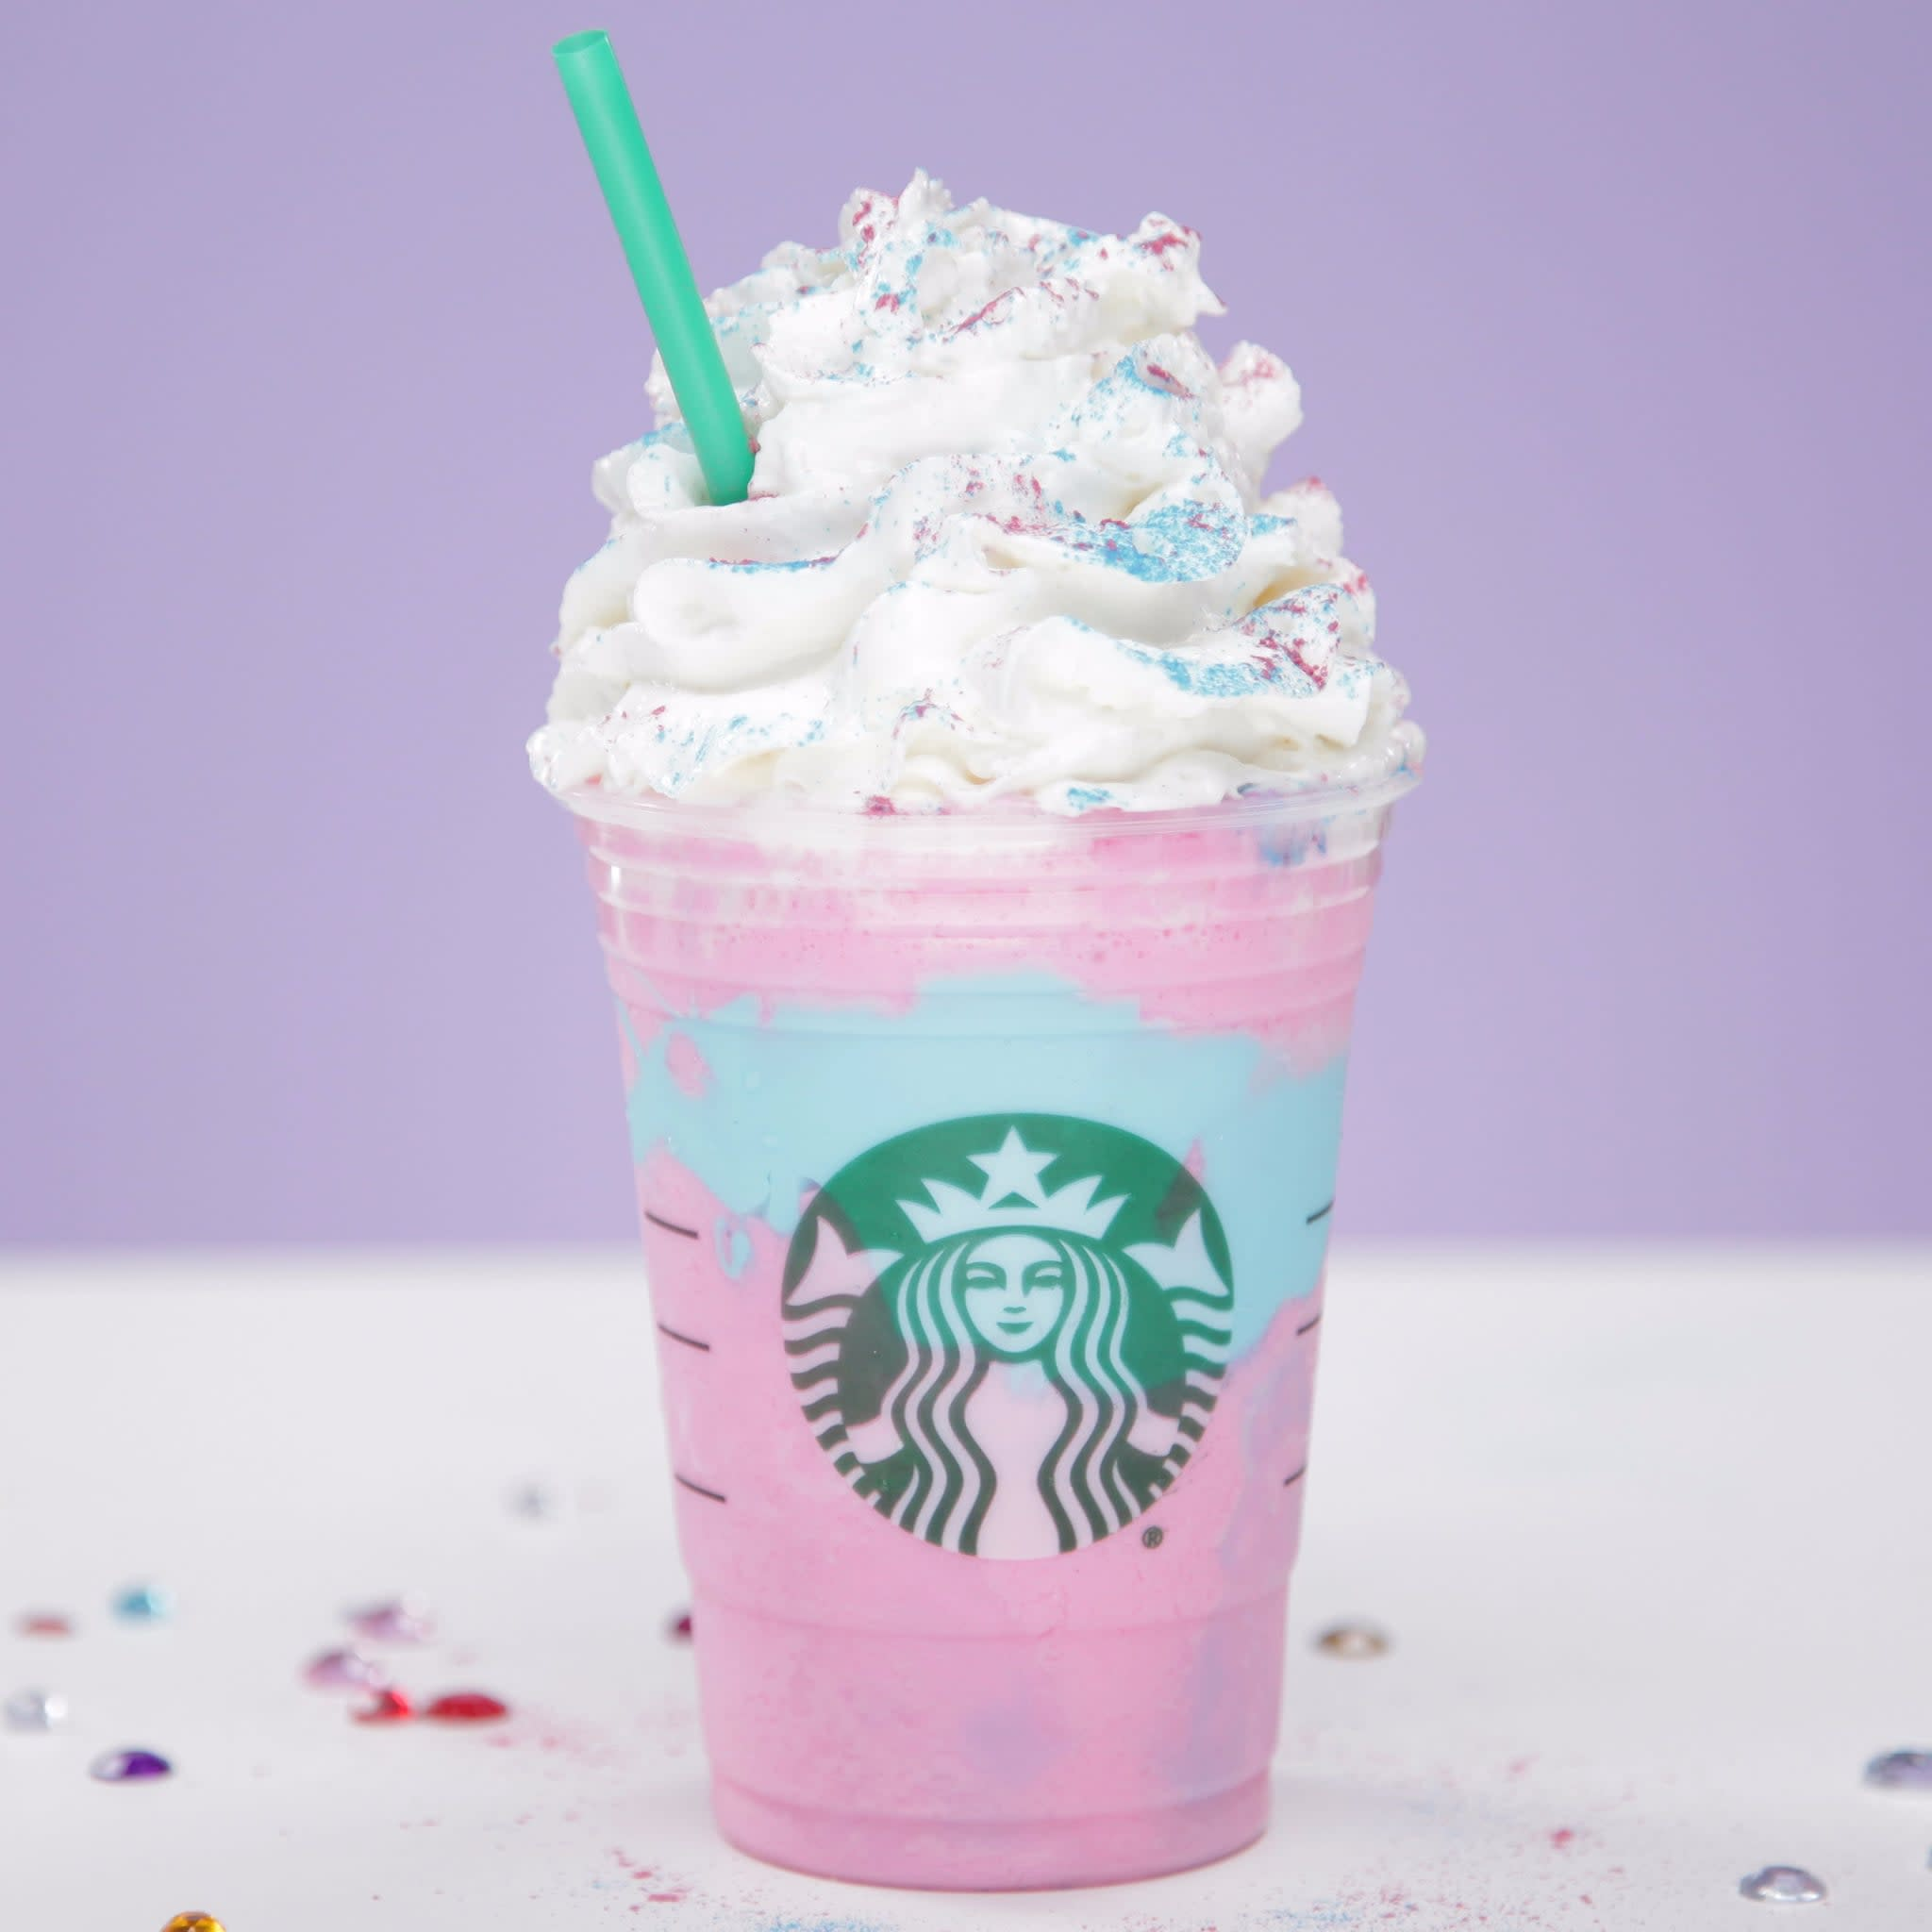 Chances Are Youve Heard About Starbuckss Limited Edition Unicorn Frappuccino This Magical Drink Was Only Available For A Few Days But If You Didnt Make